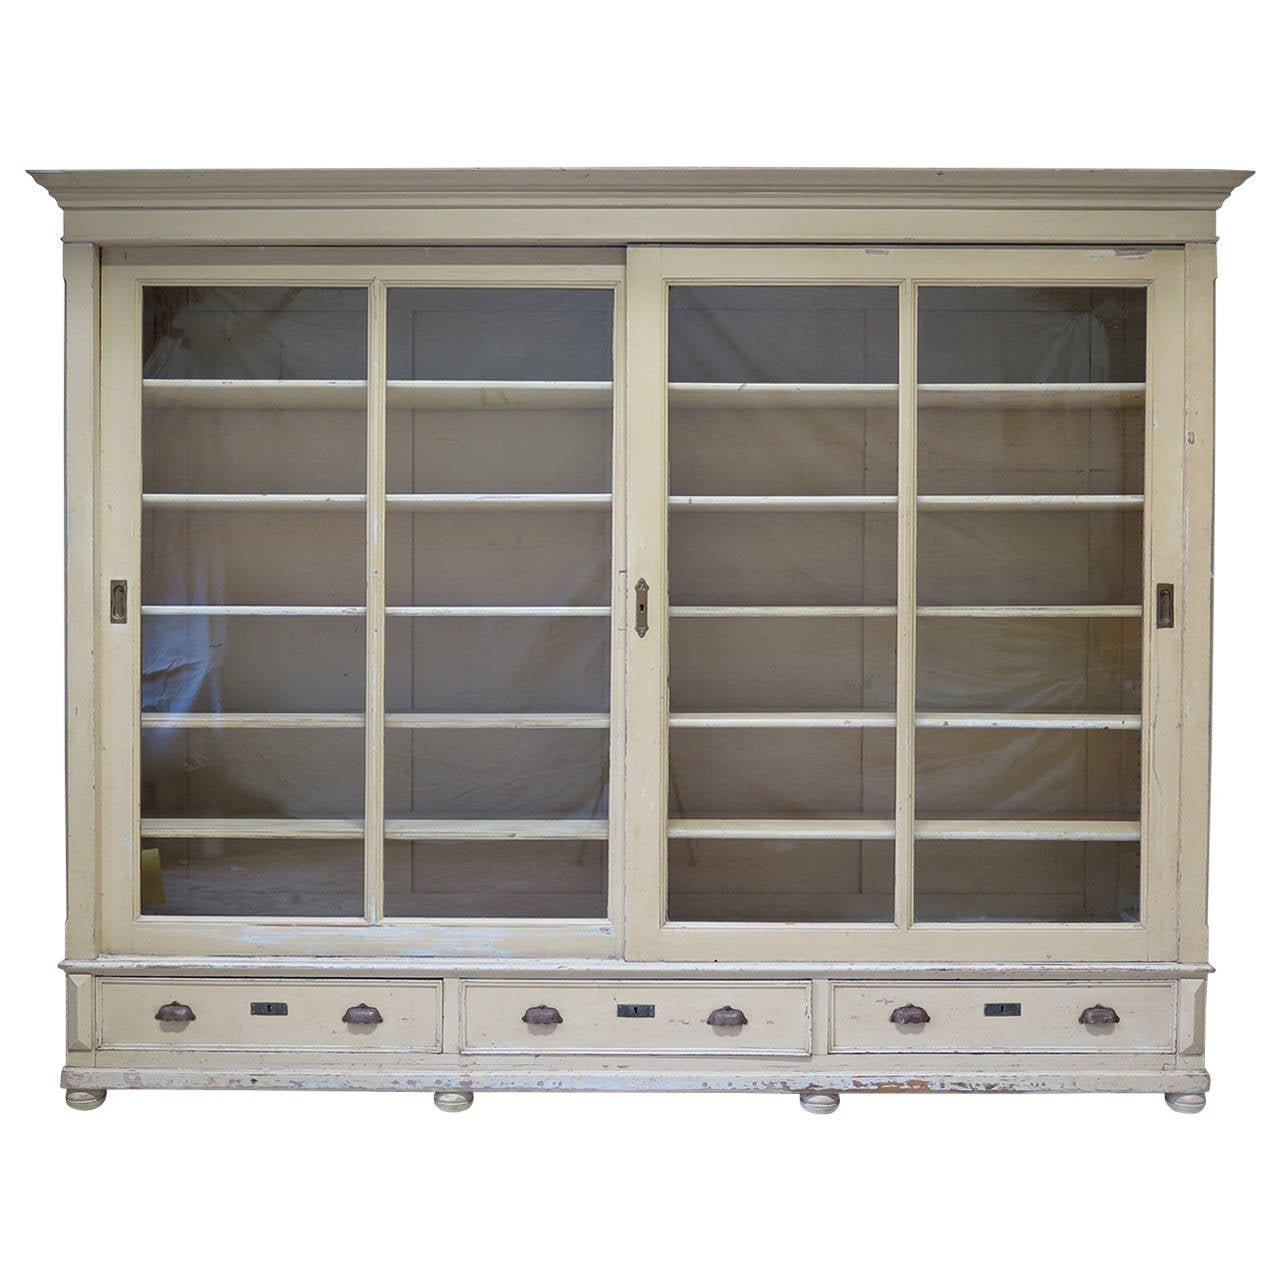 Elegant bookcase with sliding glass doors france early for Glazed sliding doors